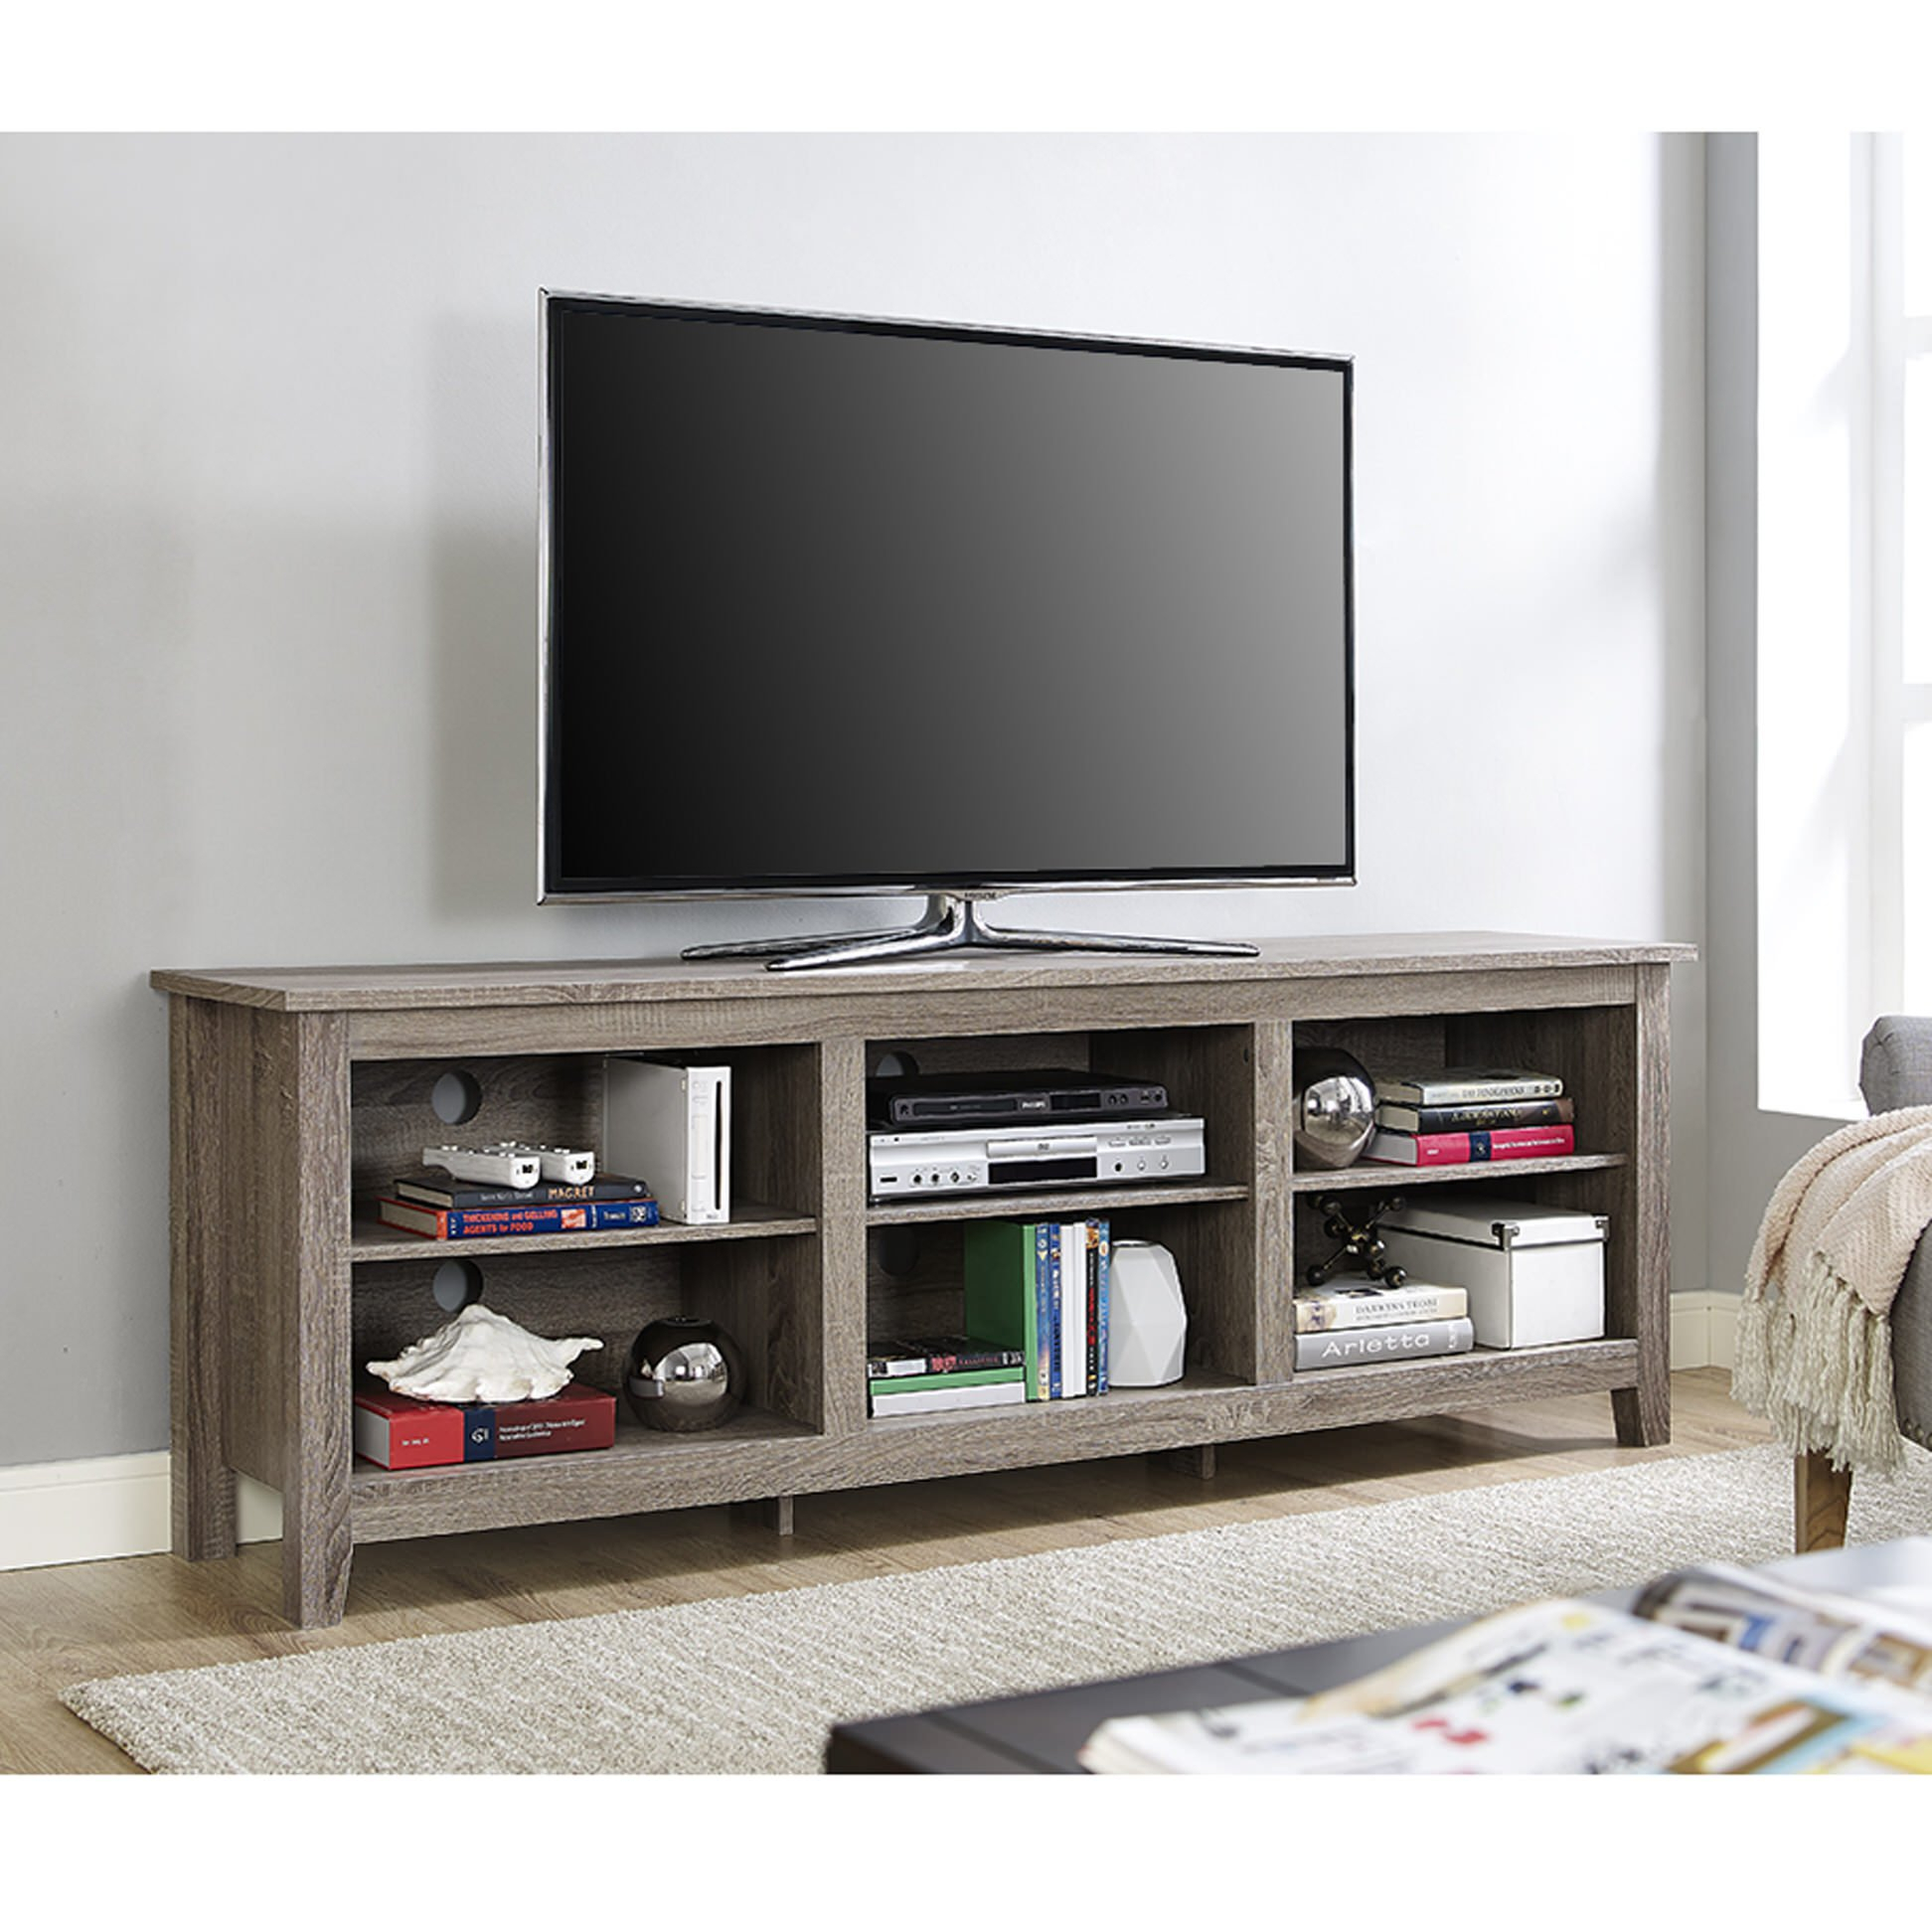 Smashing Image And Inch Tv Stand Inch Tv Stand Home Media Ideas To intended for Annabelle Blue 70 Inch Tv Stands (Image 15 of 30)